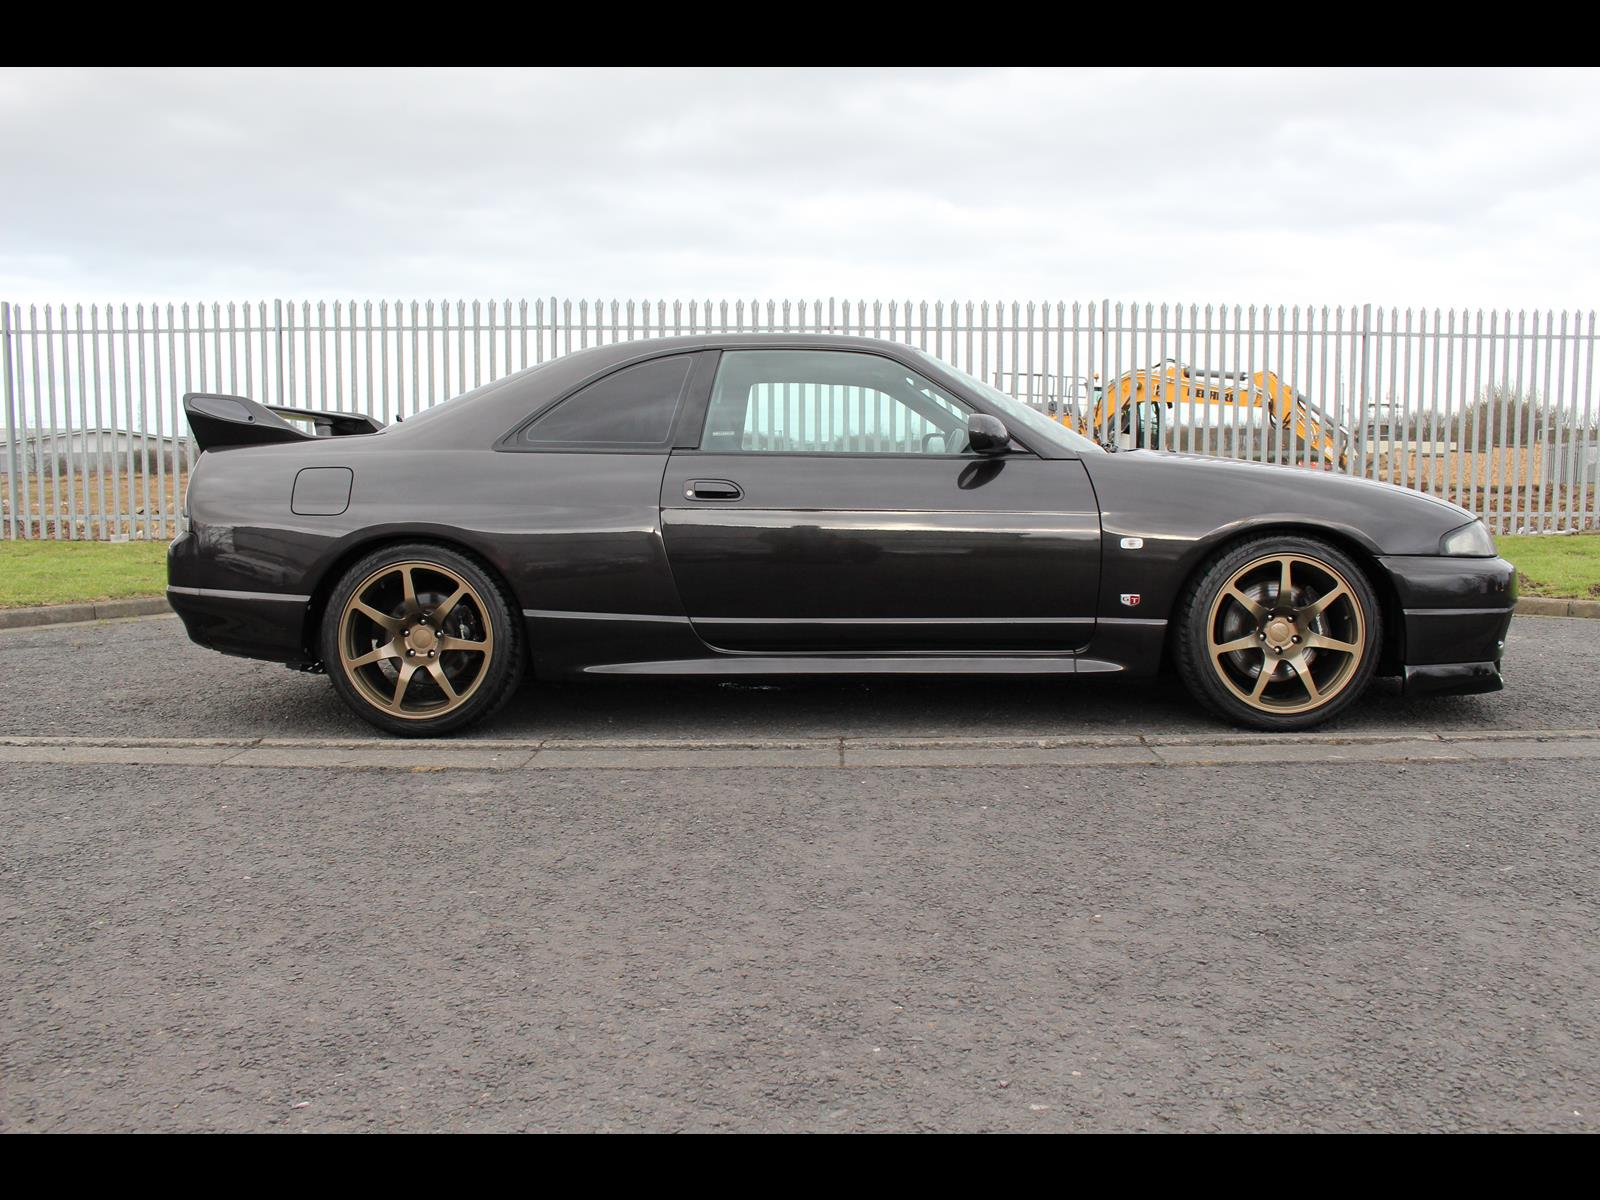 1997 nissan skyline r33 gtr series 3. Black Bedroom Furniture Sets. Home Design Ideas